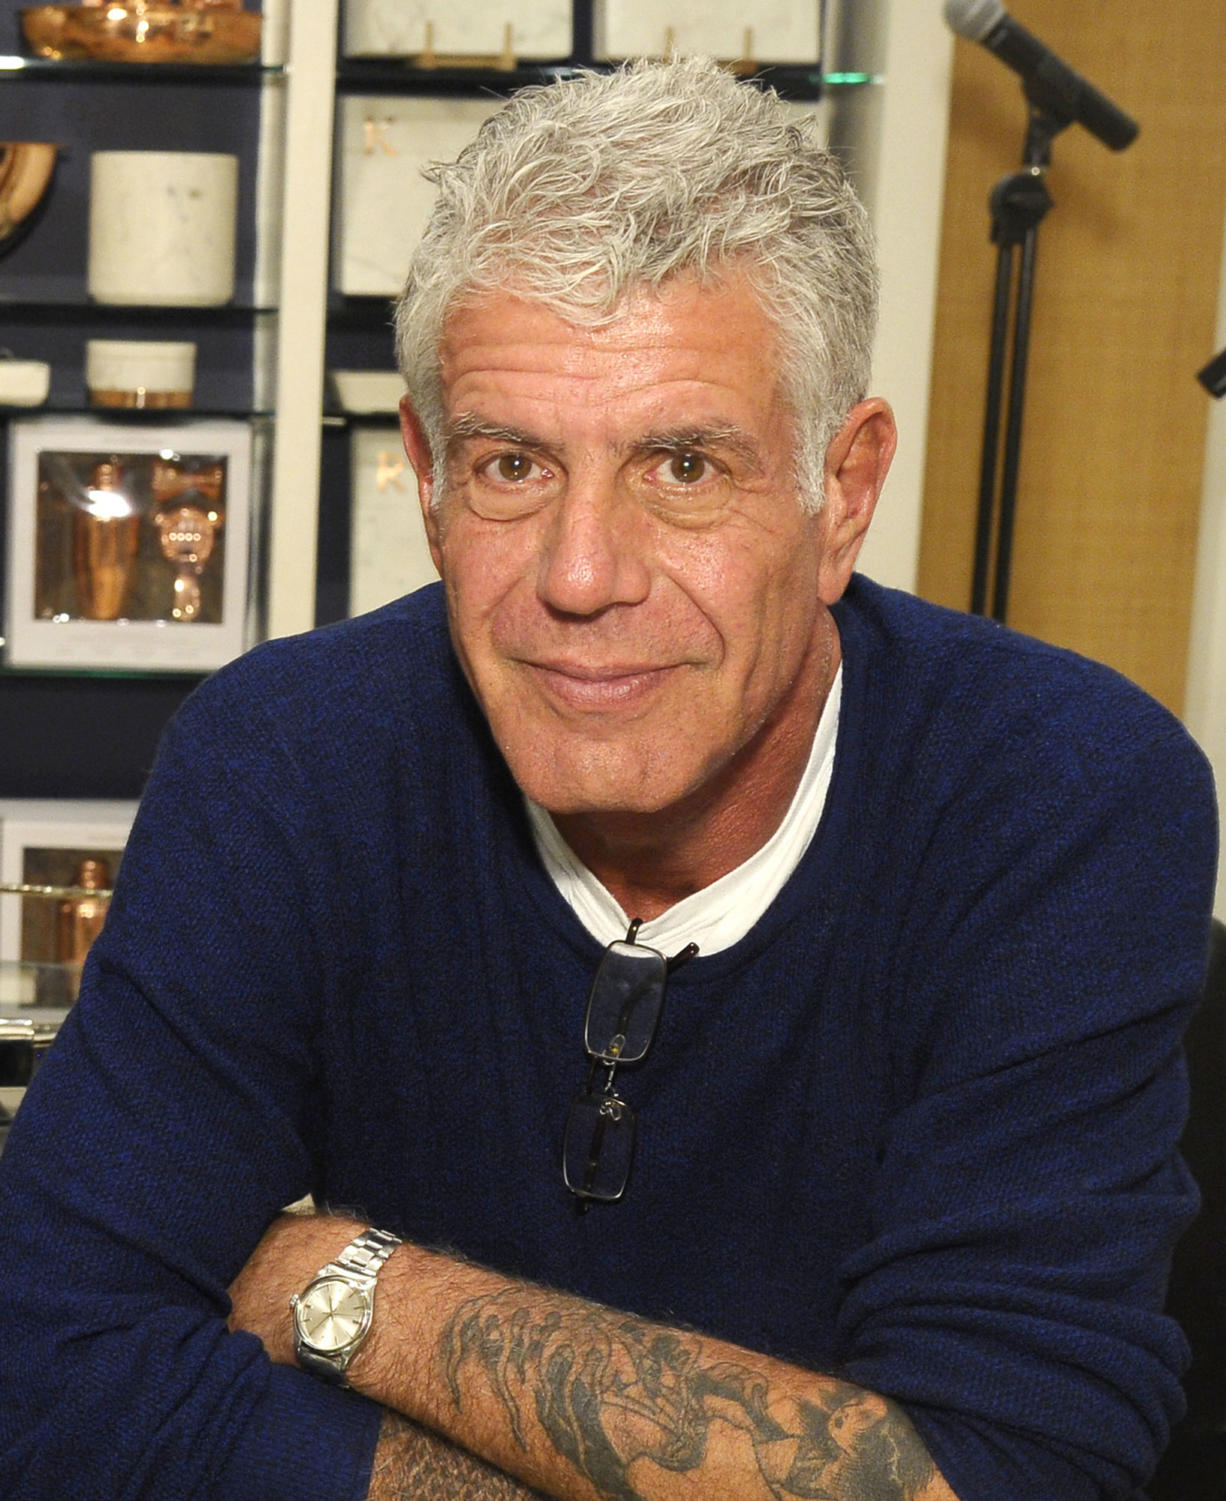 NEW YORK, NY - DECEMBER 02:  Anthony Bourdain attends Hey New York: Meet Anthony Bourdain + Eric Ripert book signing event for his book